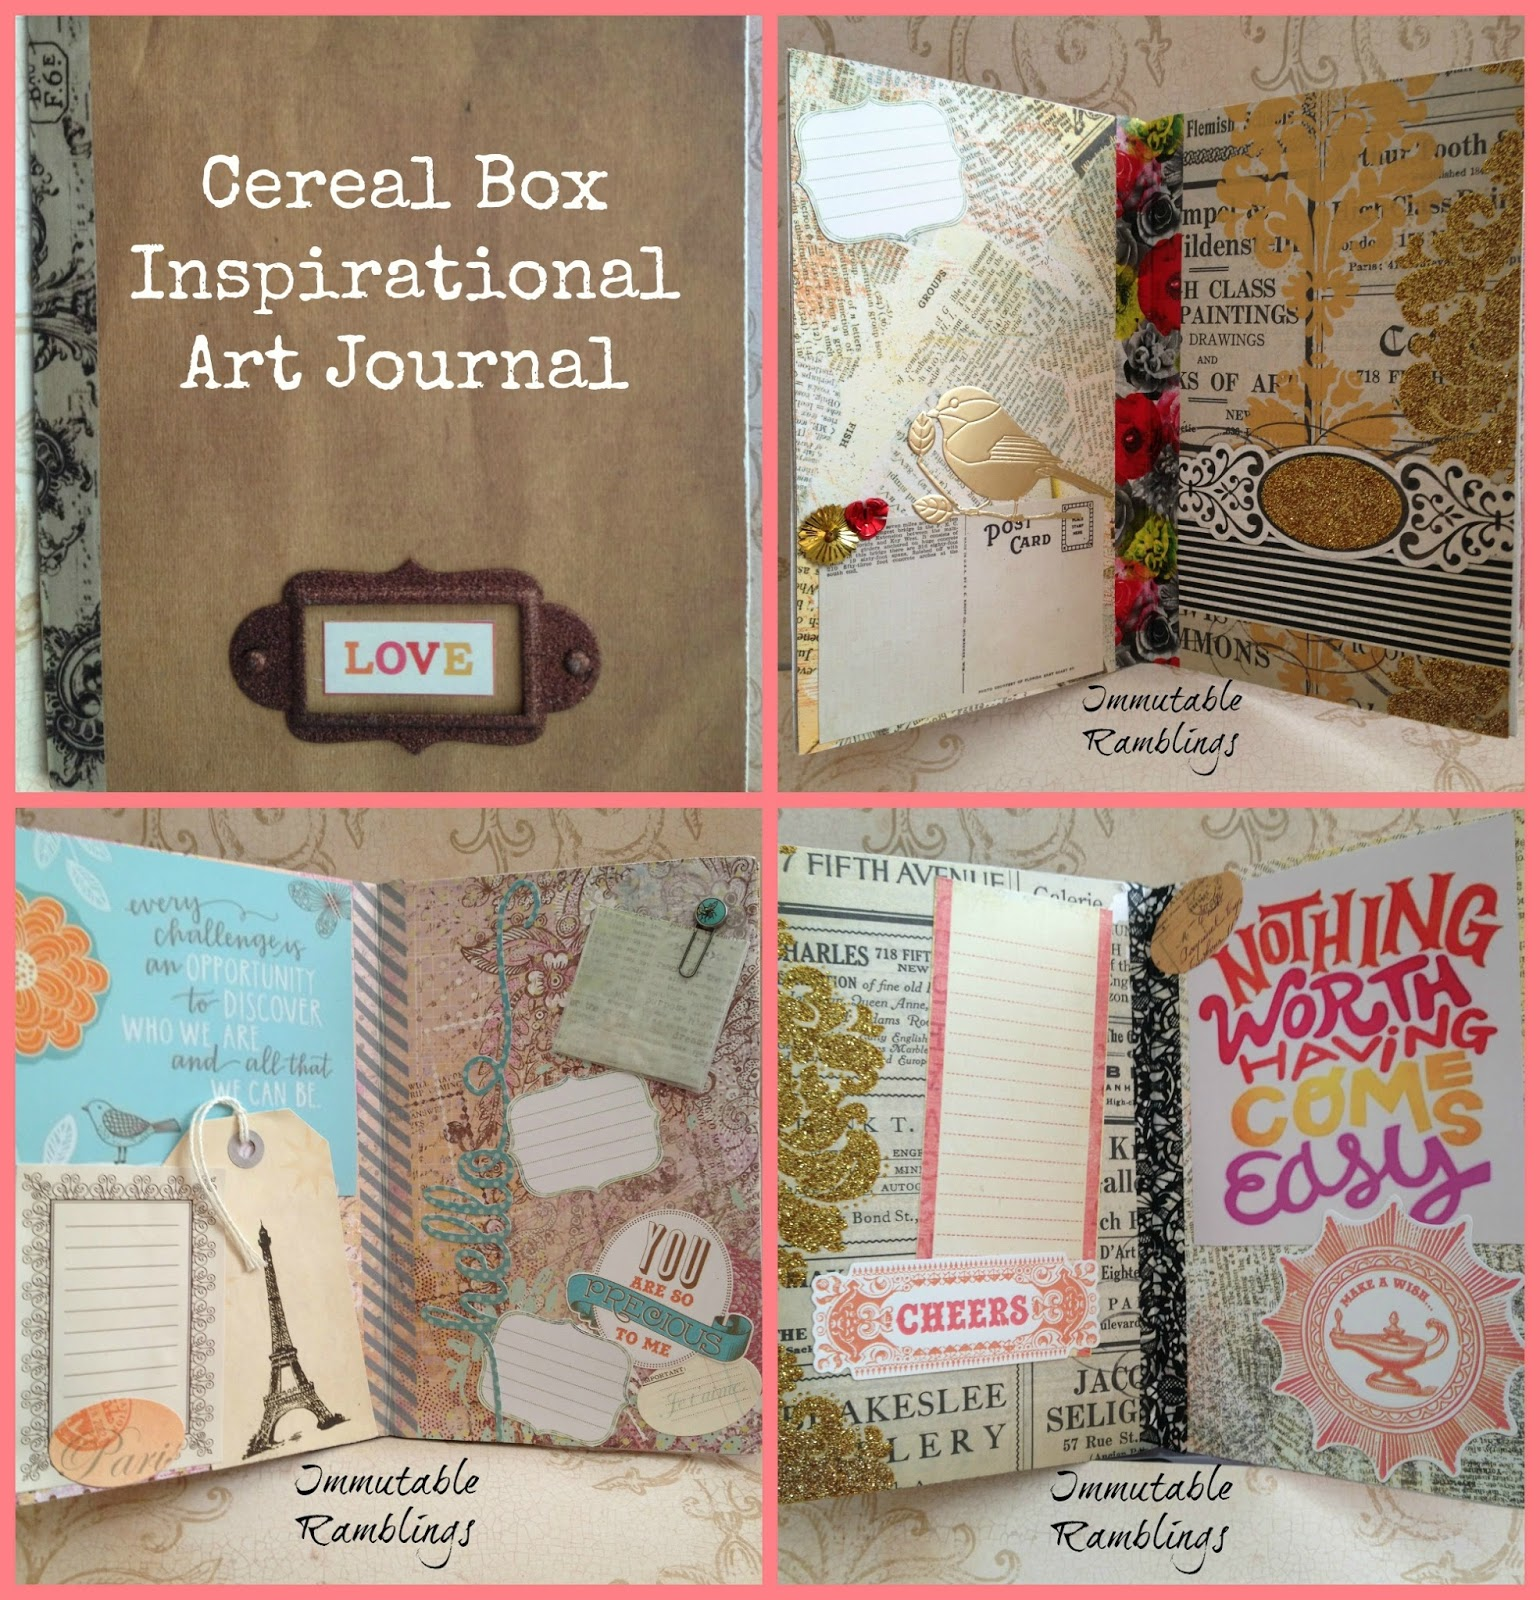 Cereal box inspirational art journal tbccrafters immutable cereal box inspirational art journal tbccrafters ccuart